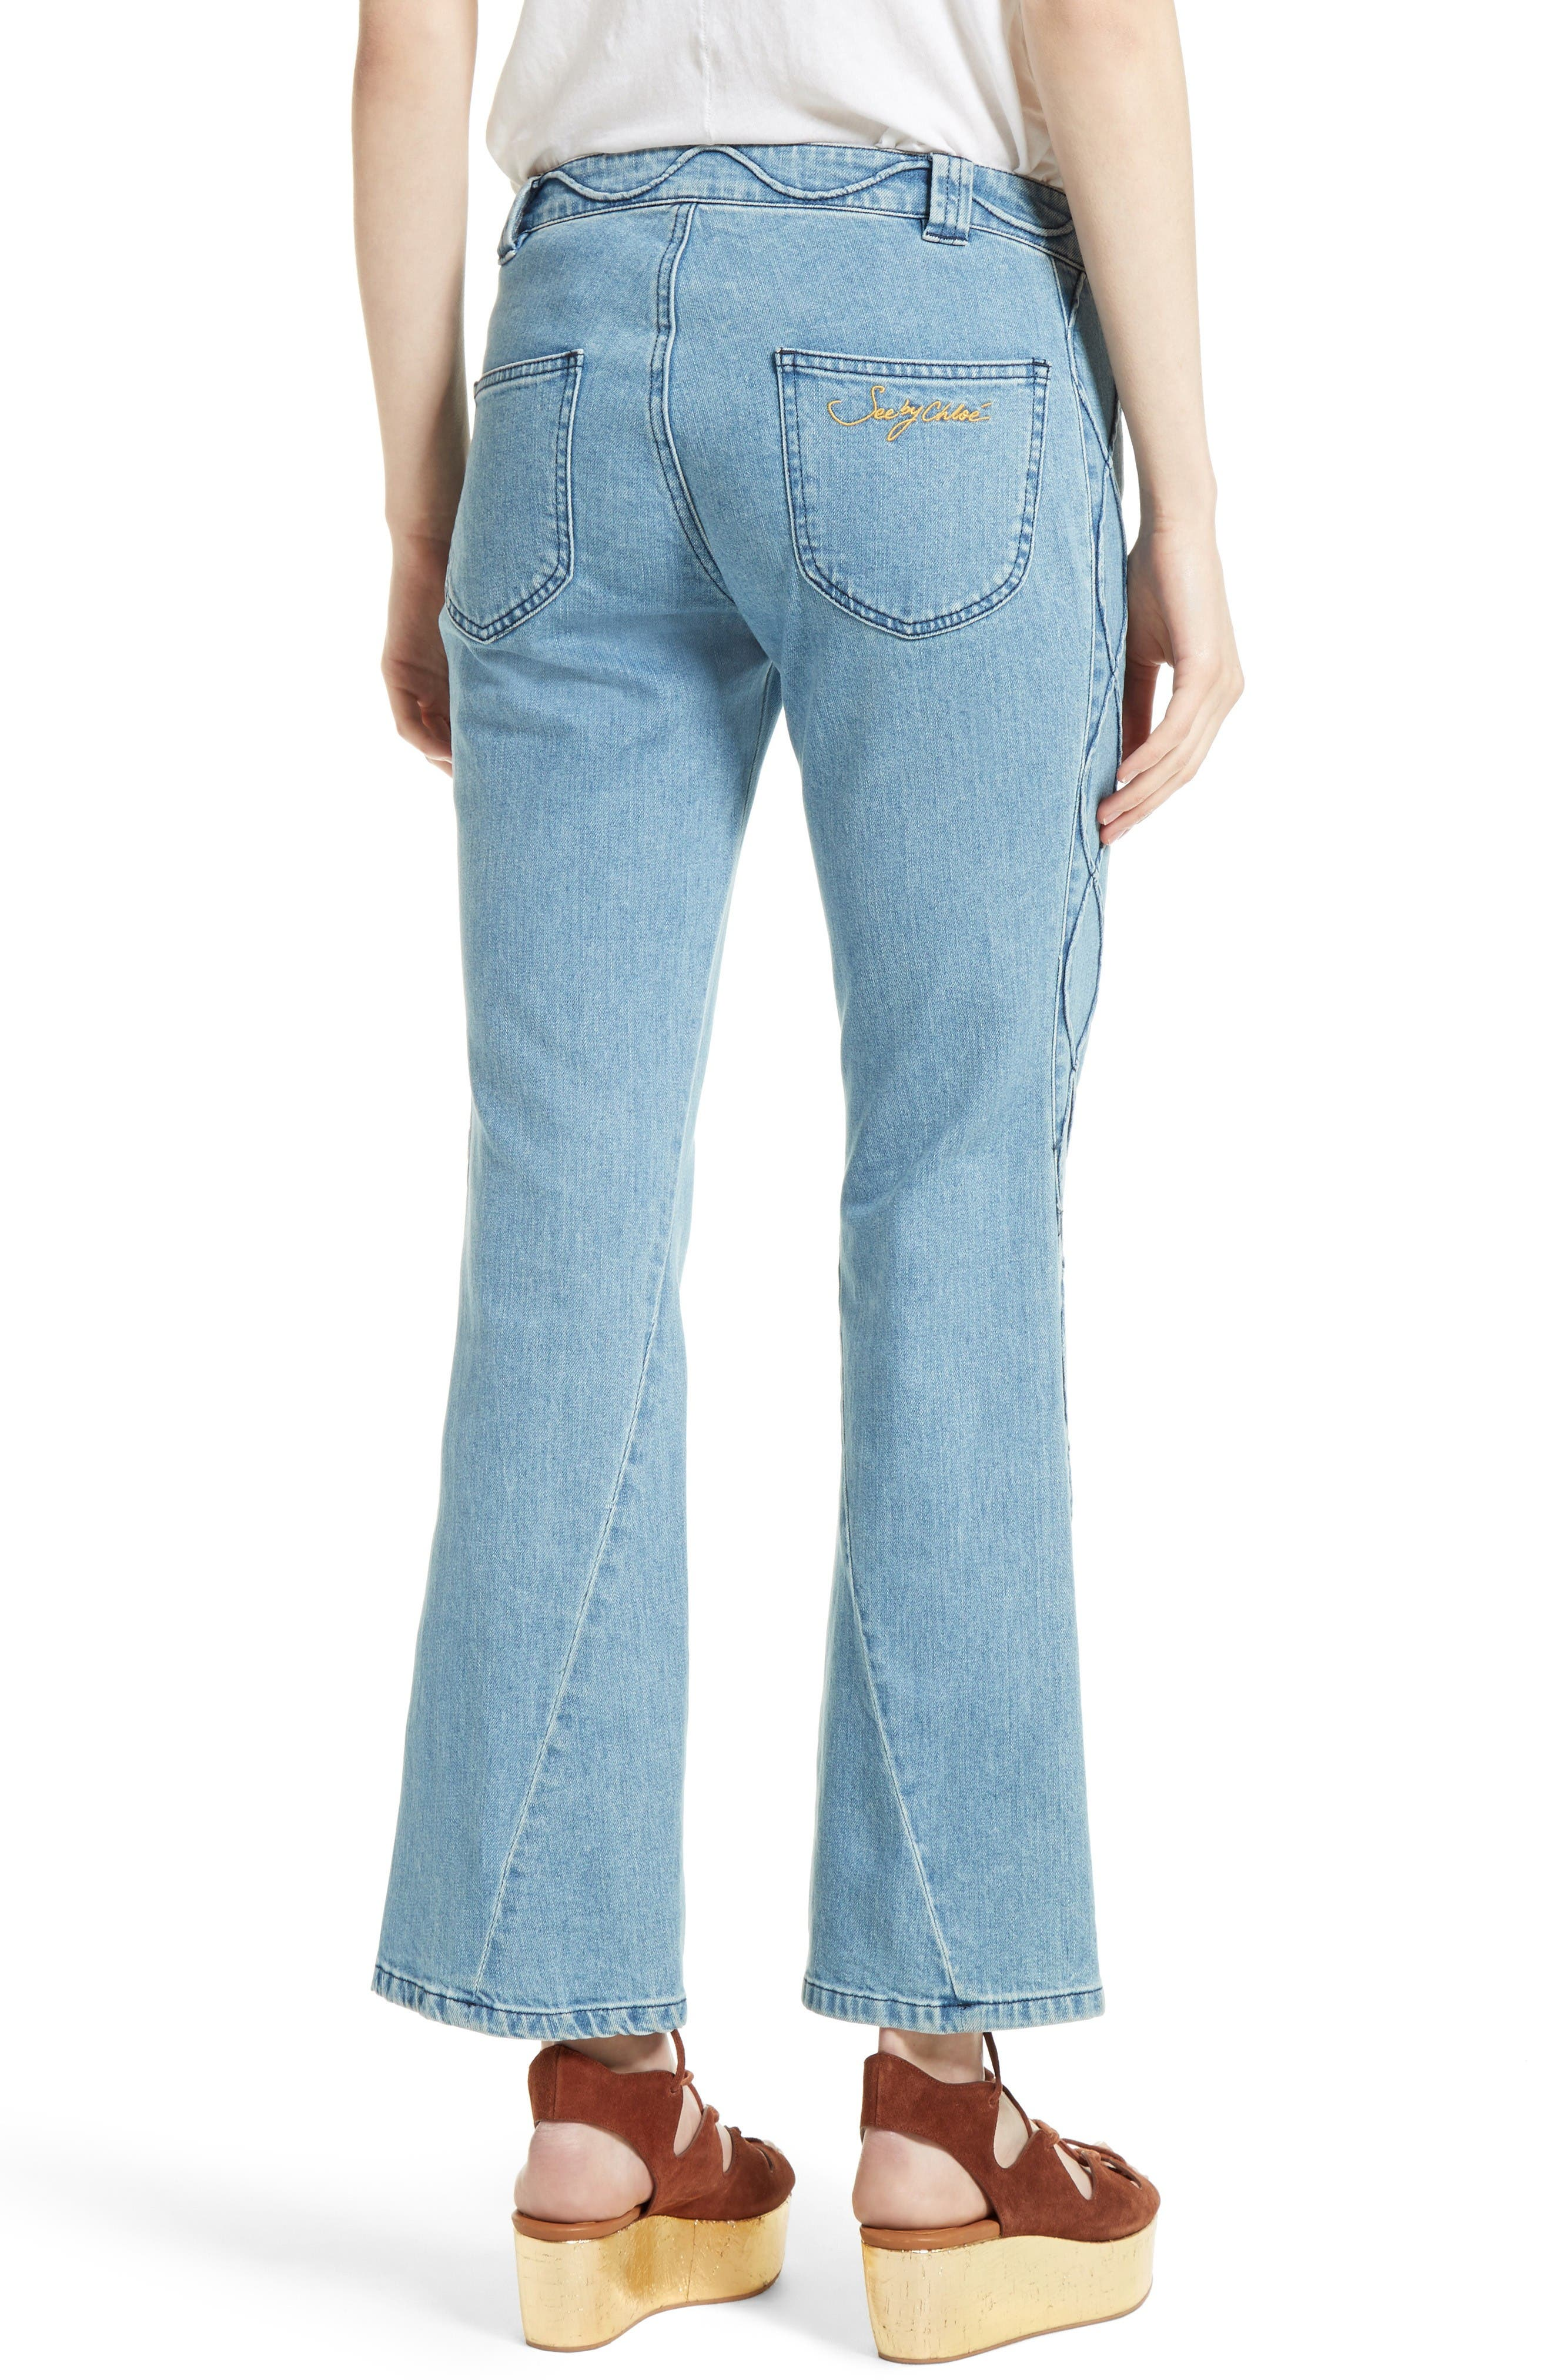 Alternate Image 2  - See by Chloé Iconic Ankle Flare Jeans (Stoned Indigo)